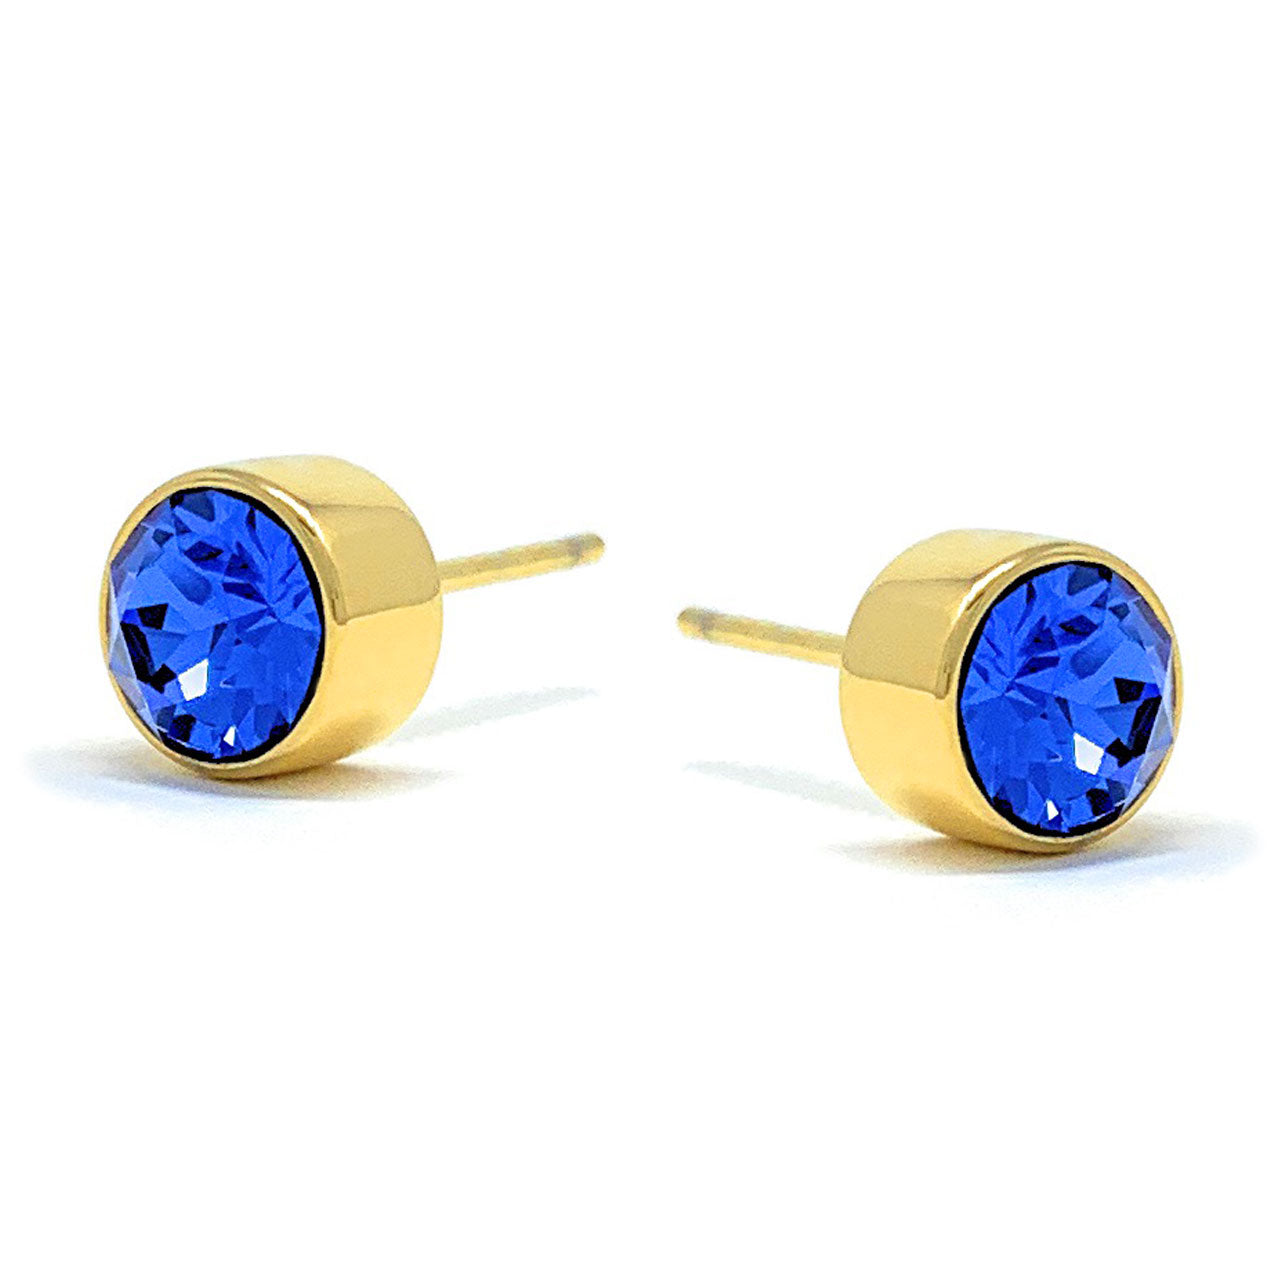 Harley Small Stud Earrings with Blue Sapphire Round Crystals from Swarovski Gold Plated - Ed Heart